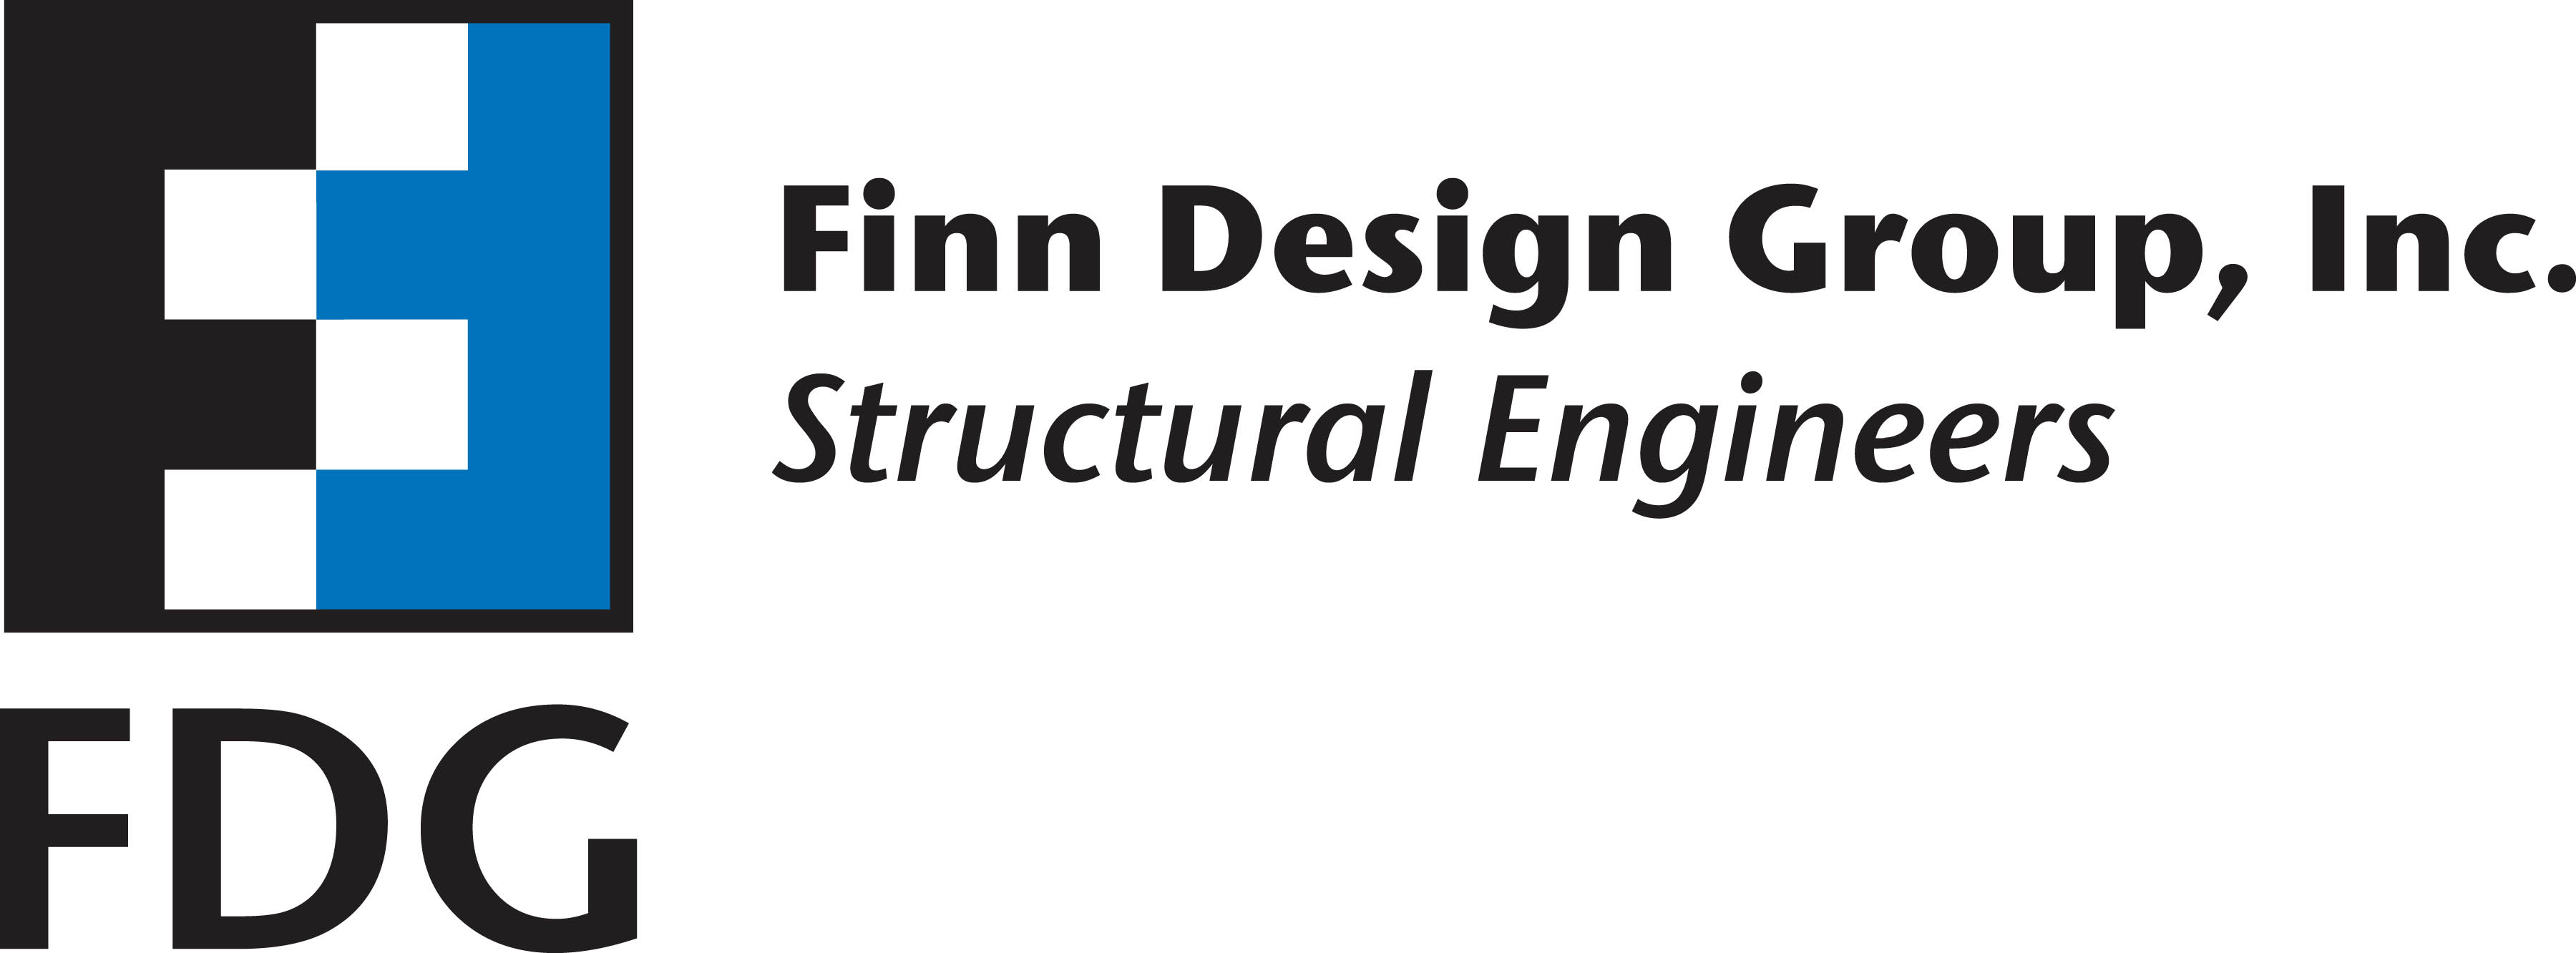 Finn Design Group, Inc.